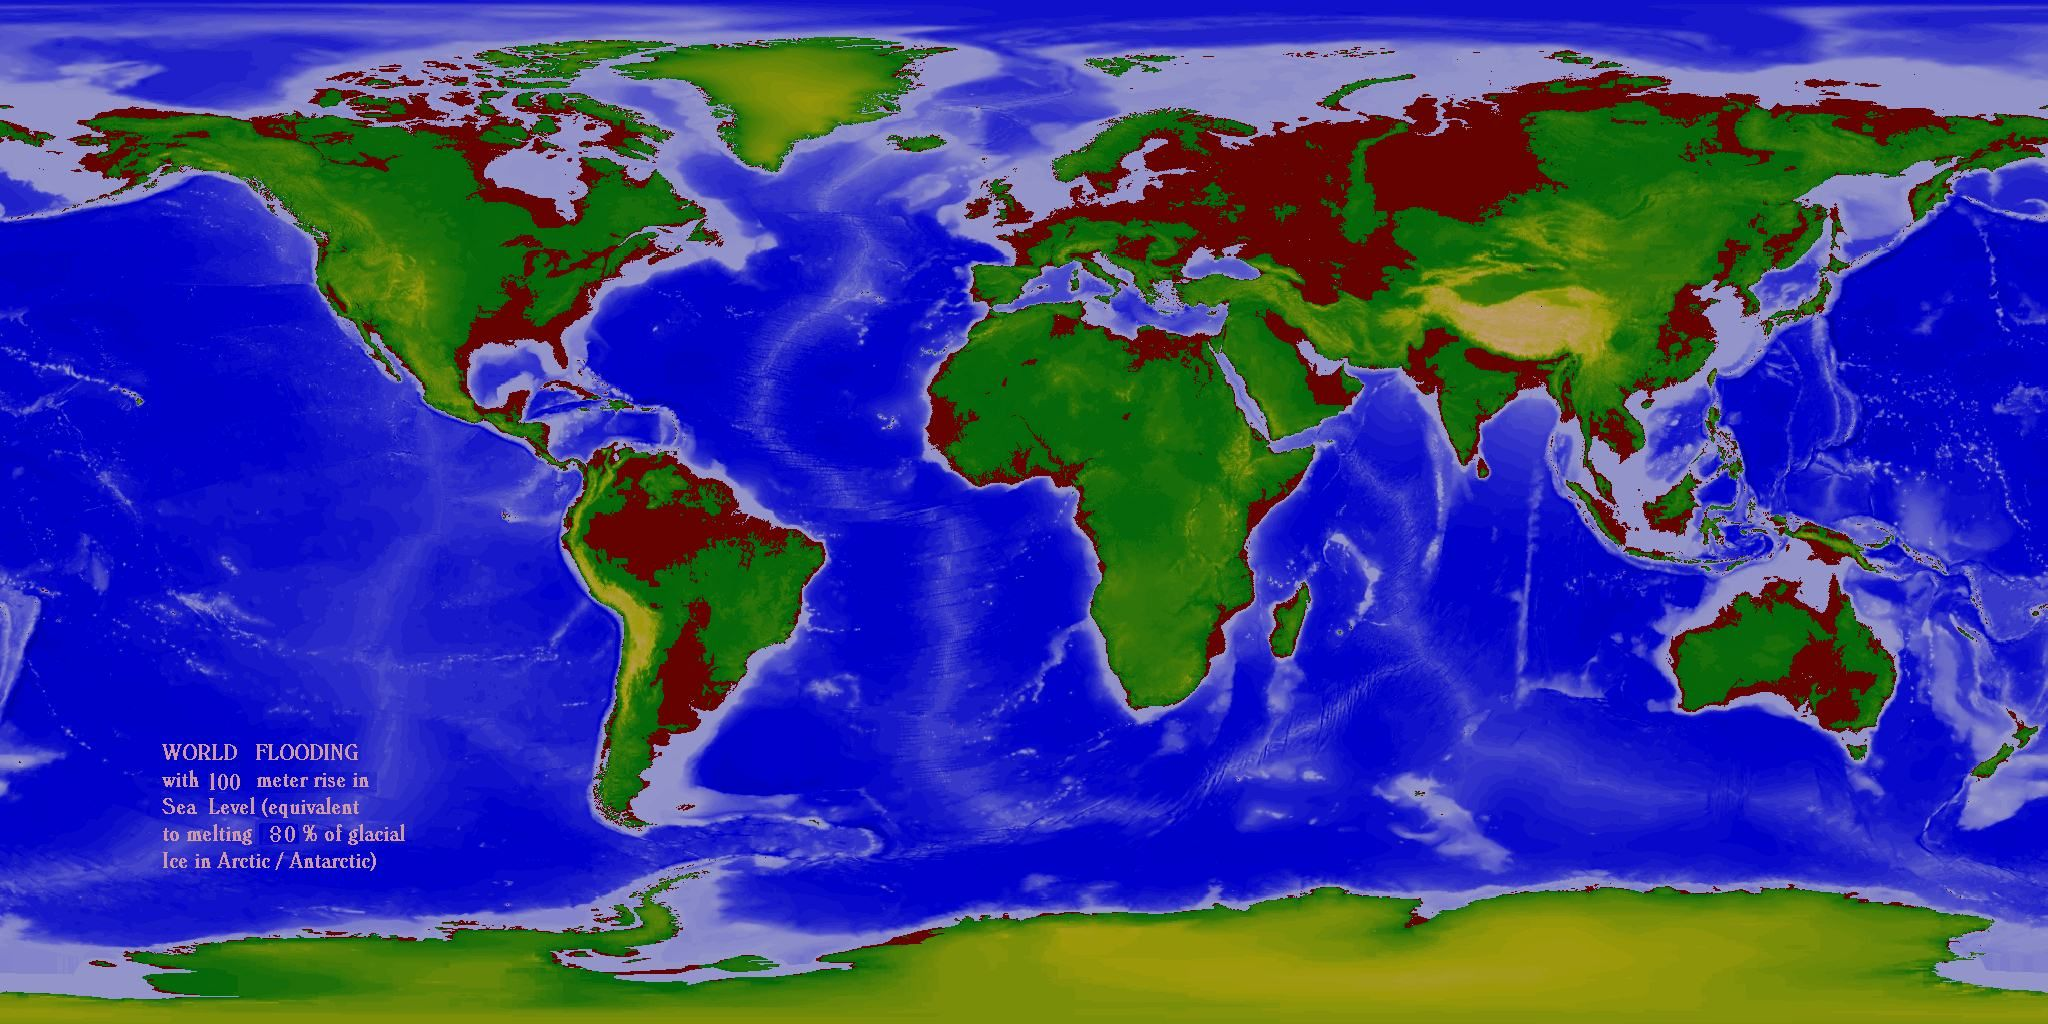 Sea Level Map World Flood Maps   60m & 100m rise in sea level   Old Project